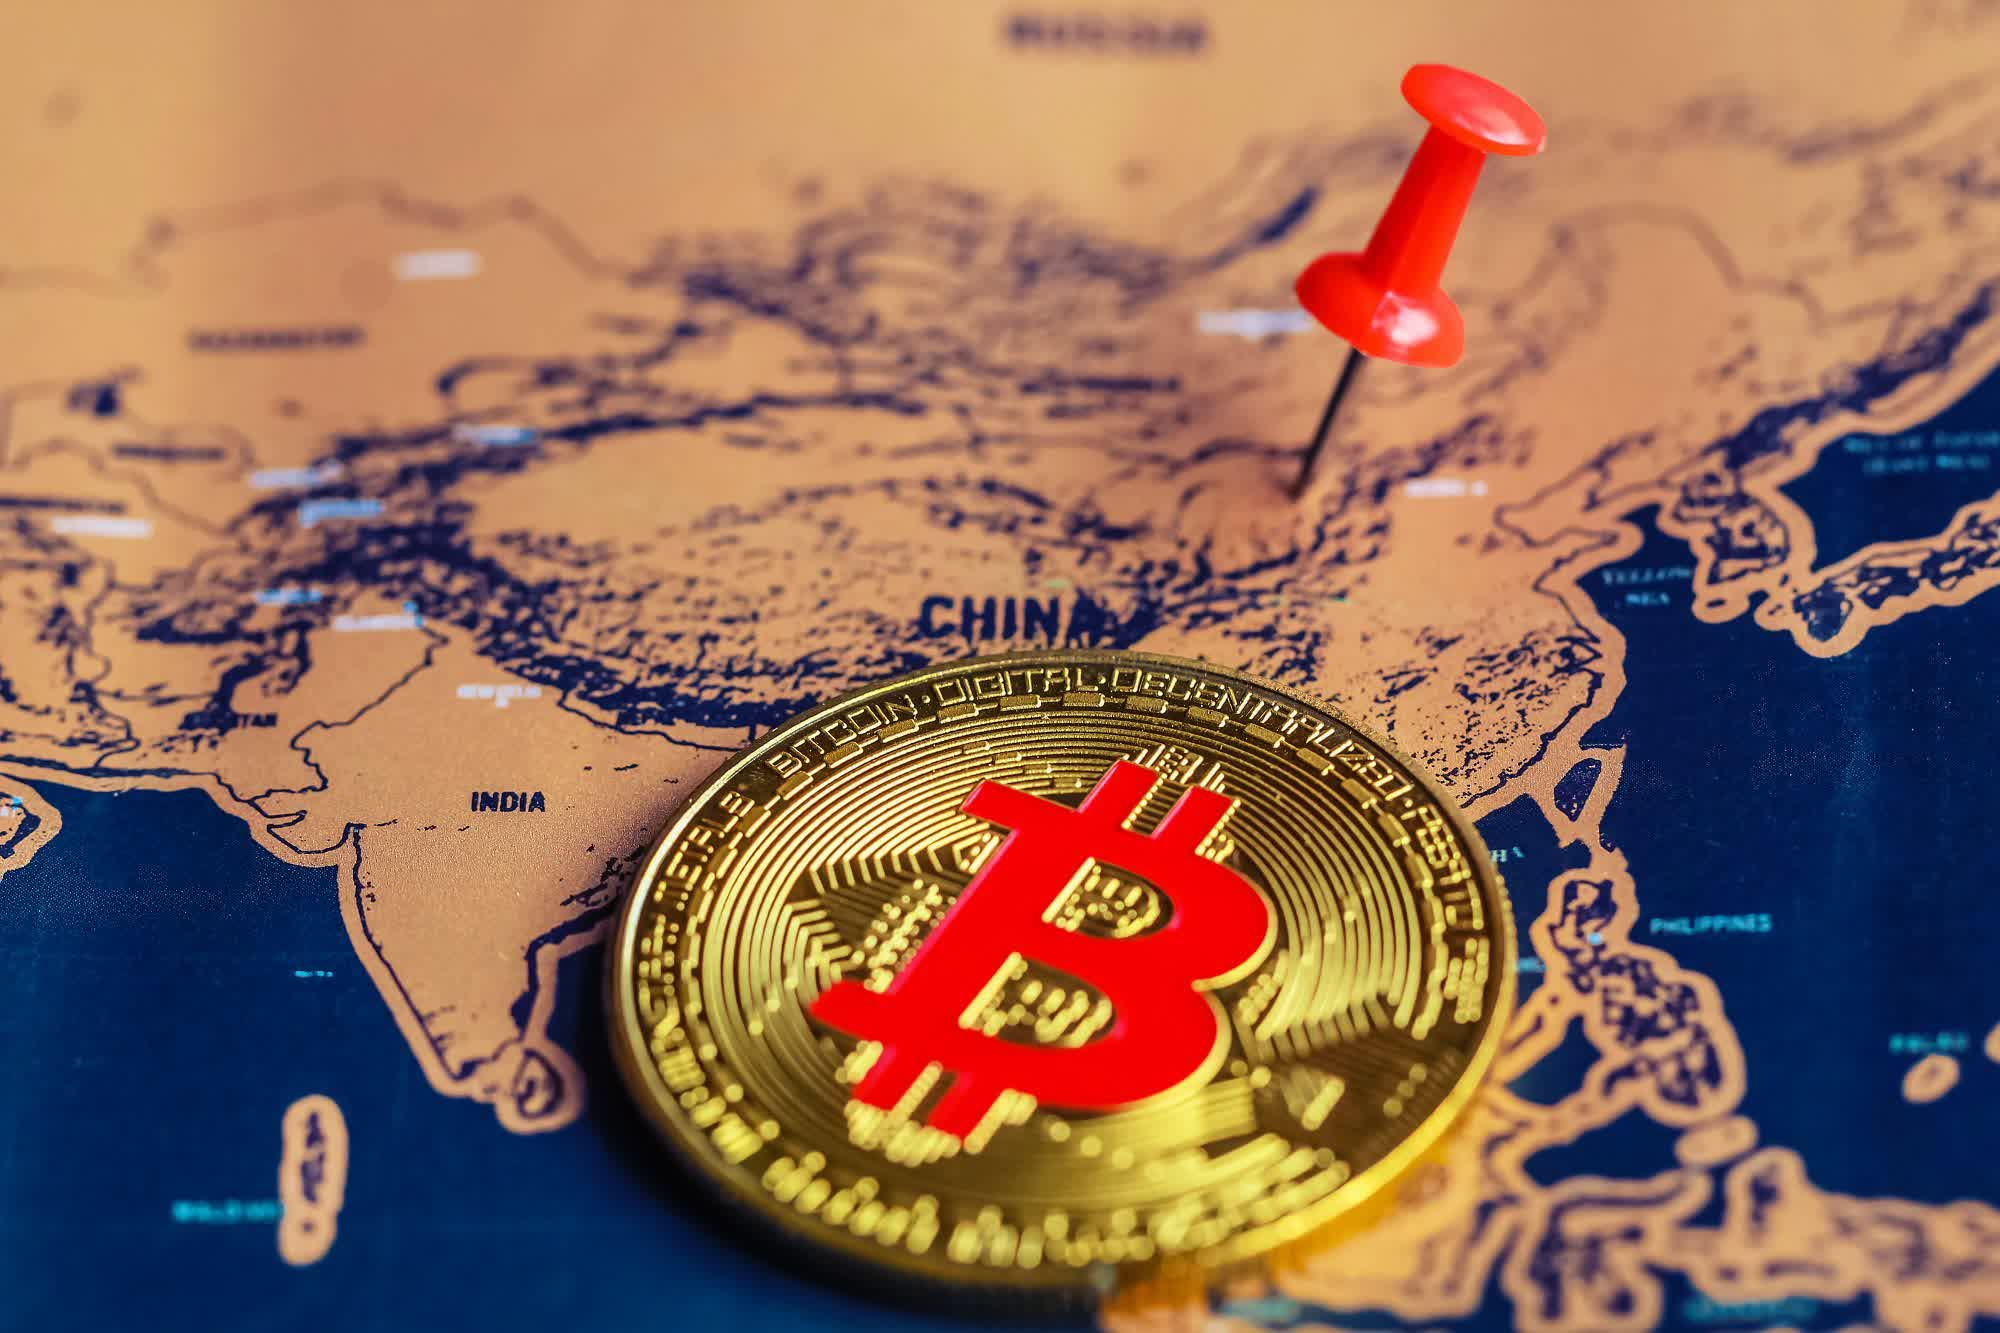 GPU prices see sharp drop in China after Sichuan authorities shut down cryptomining operations